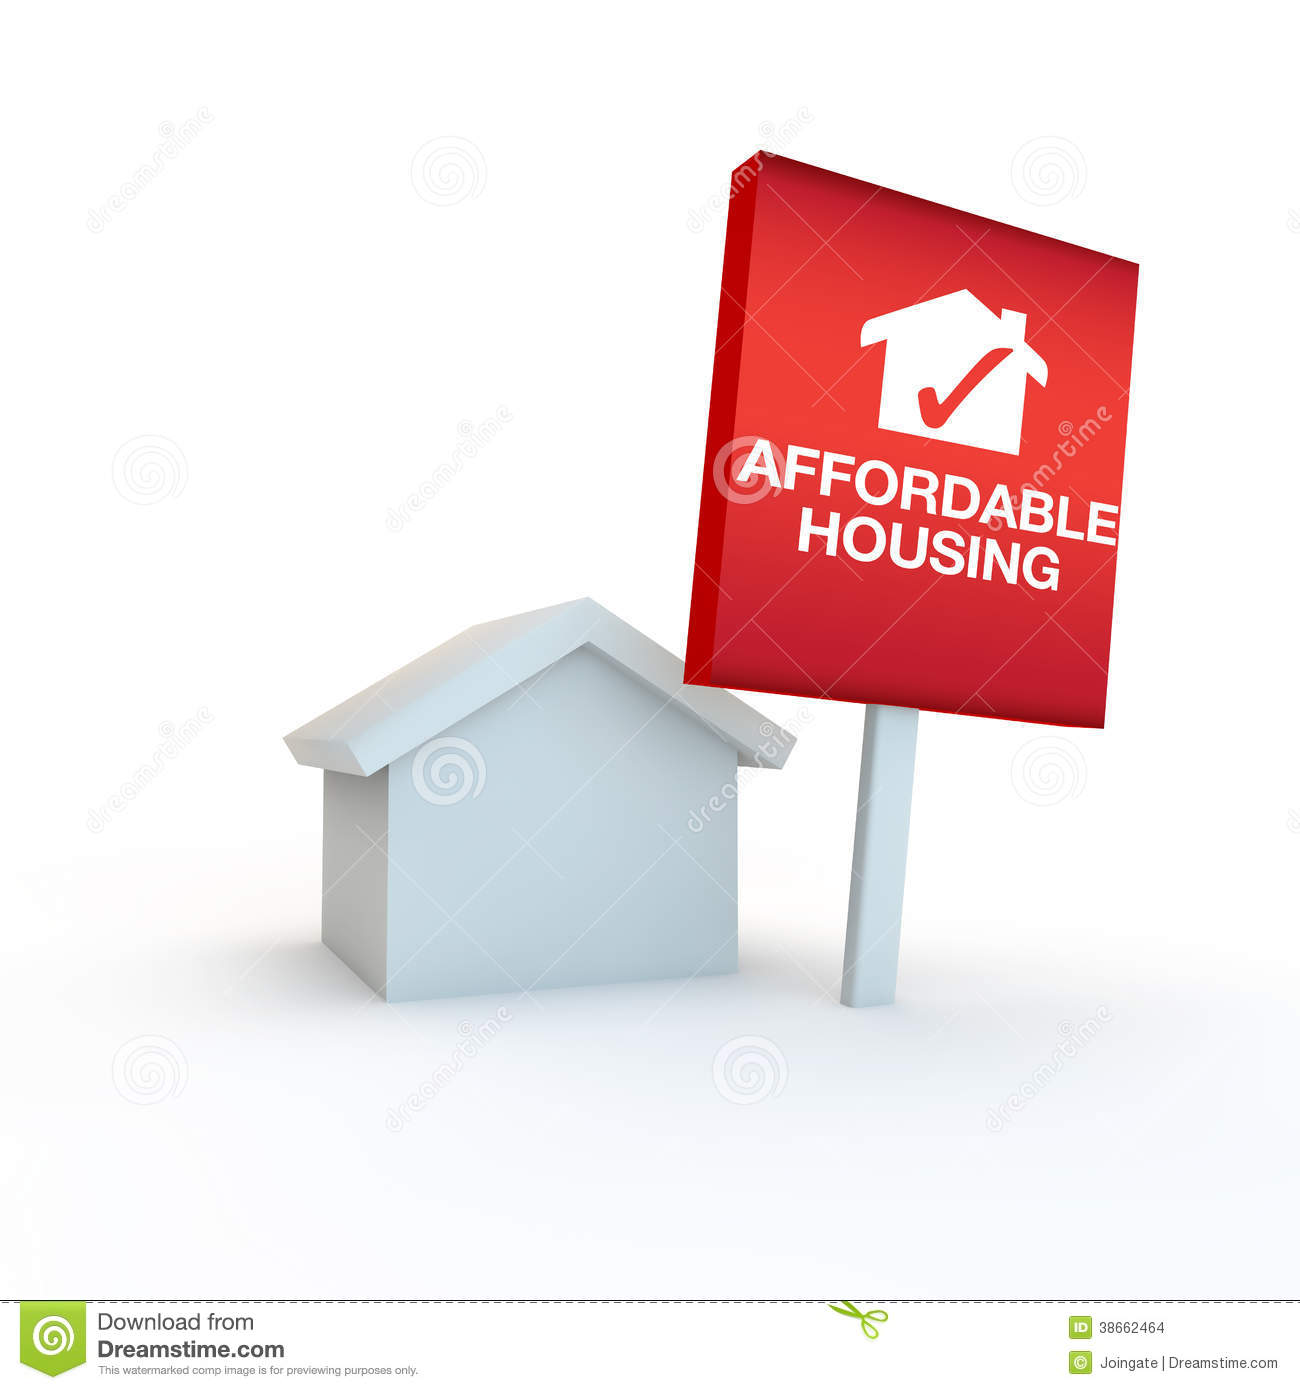 Addordable housing 3d icon render on white stock images image 38662464 - Affordable social housing ...